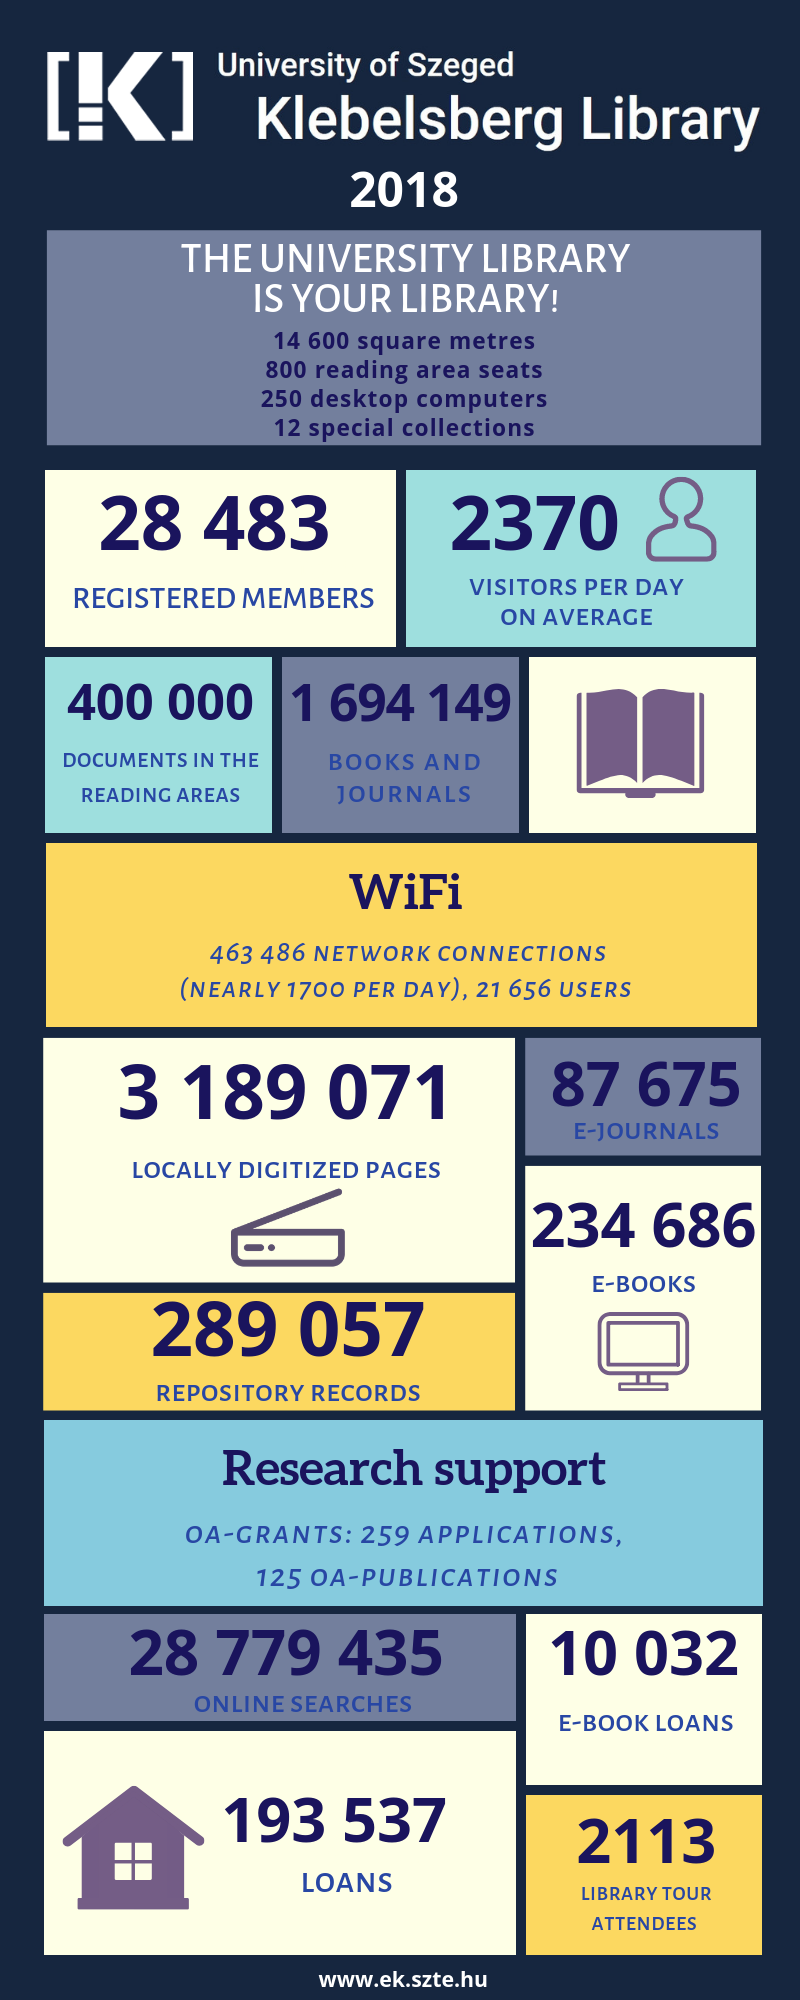 library_in_numbers_2018